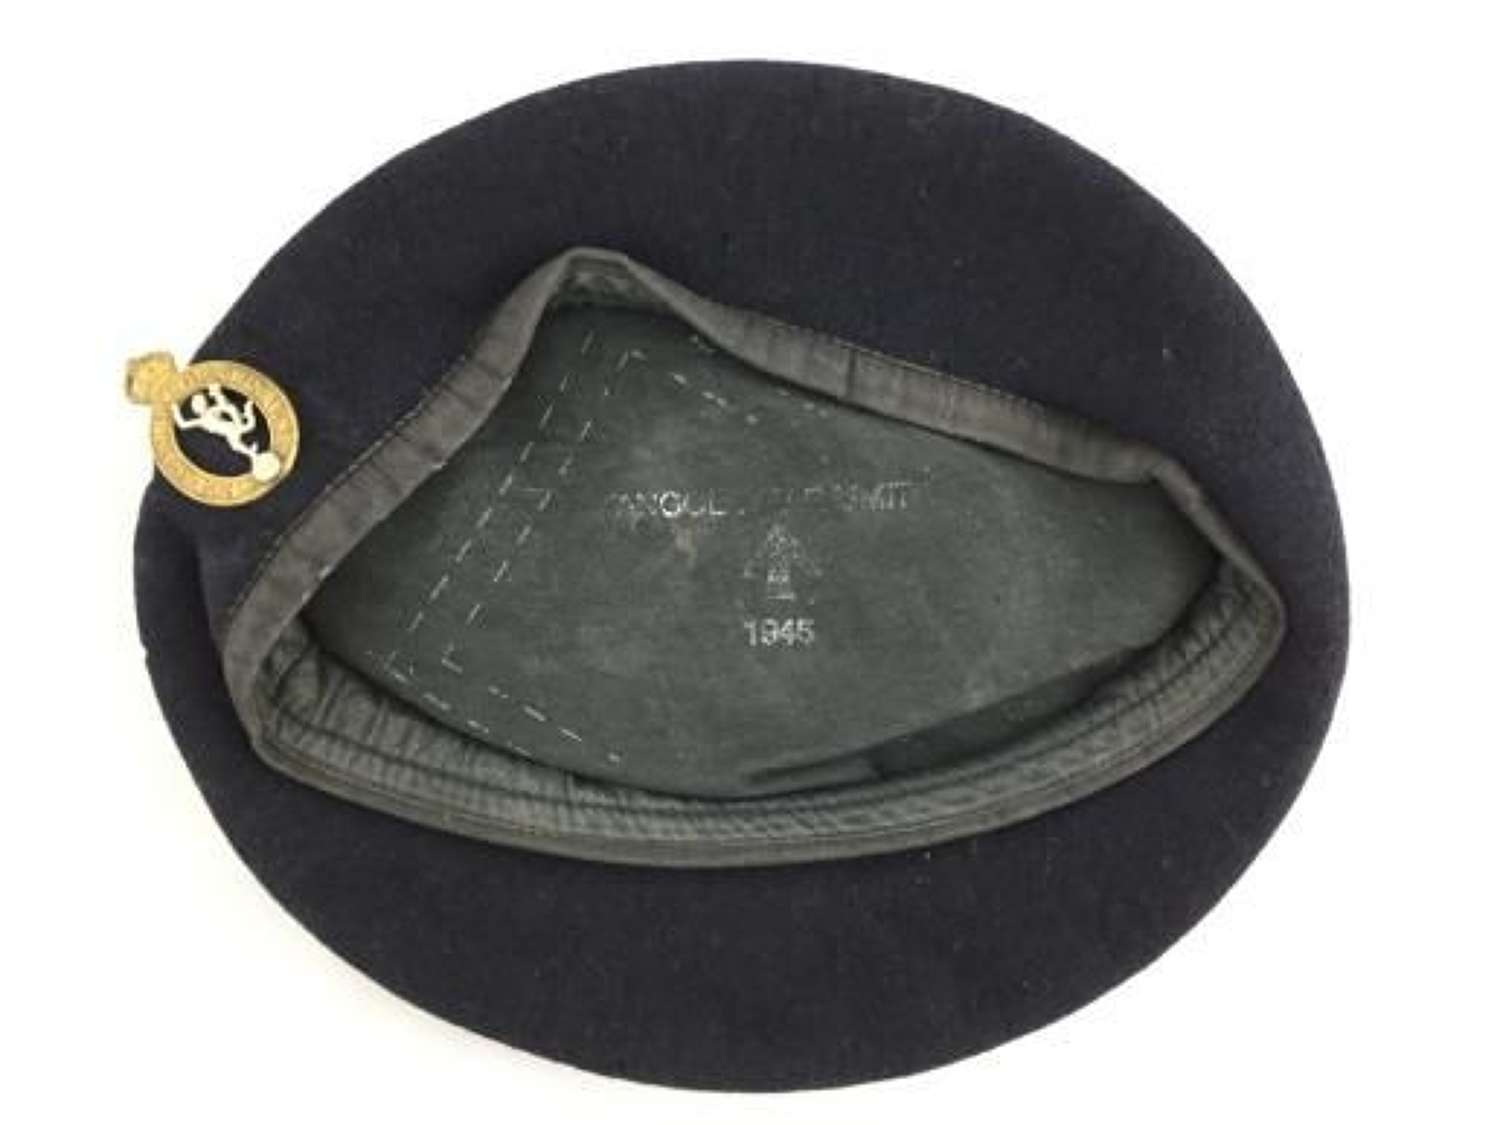 1945 Dated Royal Signals Beret by 'Kangol Wear Limited'